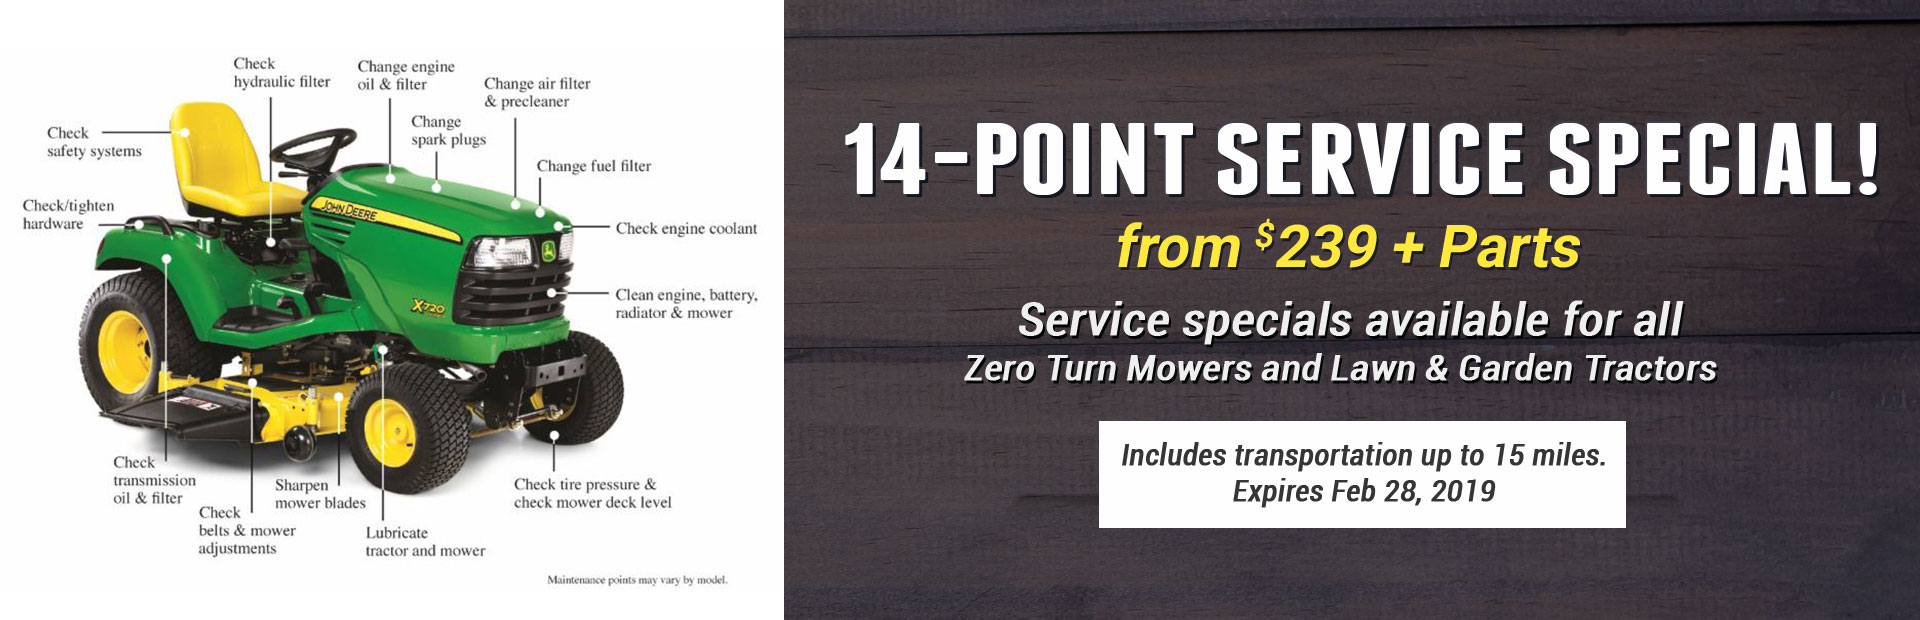 14-Point Service Special